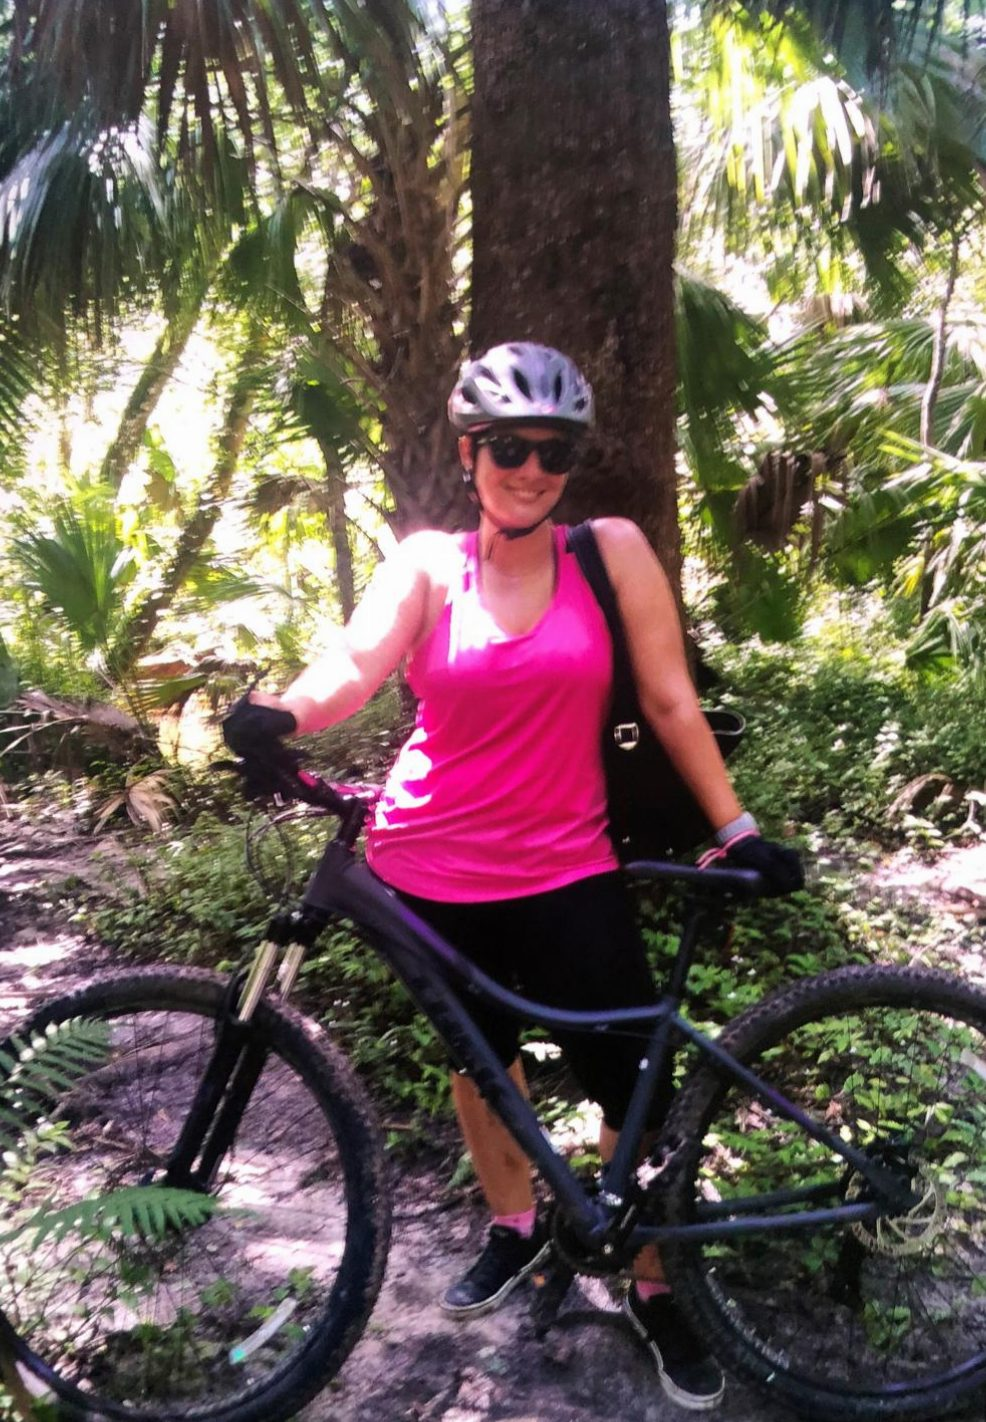 Joanie Rodriguez poses with her new mountain bike. Rodriguez started mountain biking during the summer with her friend. As a team, they would go off-trail mountain biking every weekend.